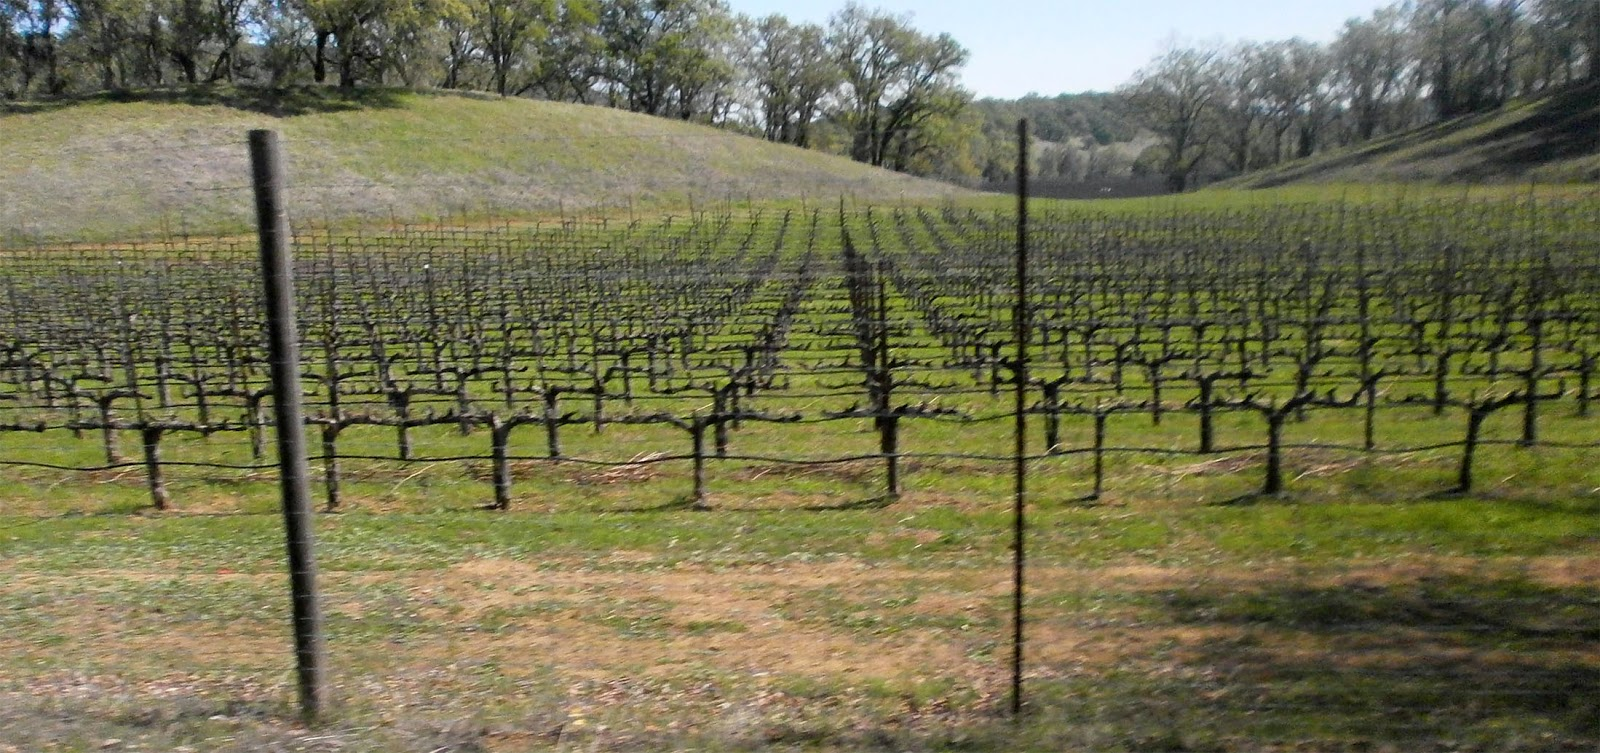 pope valley 1of 5hine ranch in pope valley recently produced its inaugural 2015 cabernet  sauvignonphoto: noah berger, special to the chronicle.